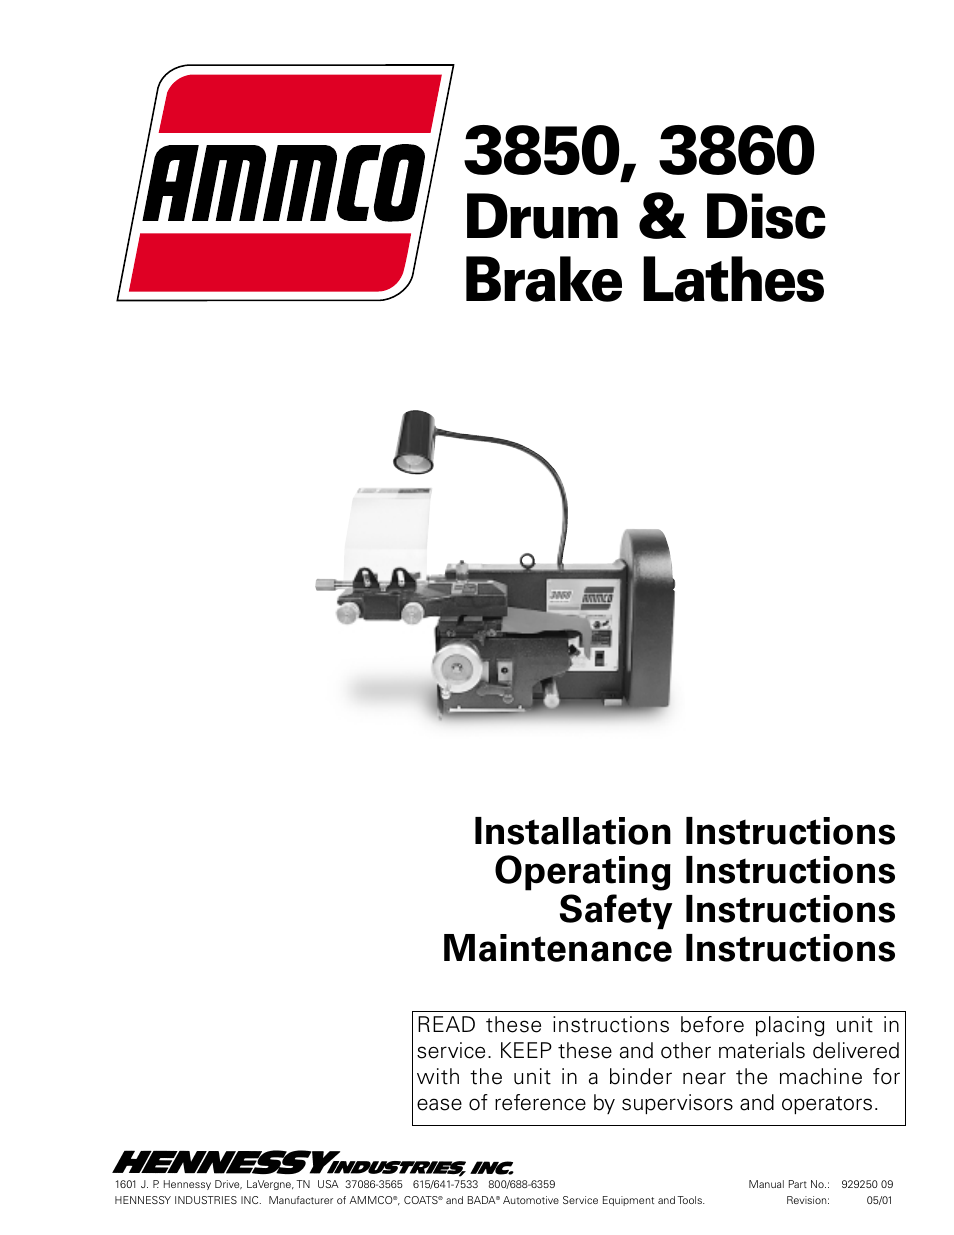 AMMCO 3860 Drum & Disc Brake Lathe User Manual | 24 pages